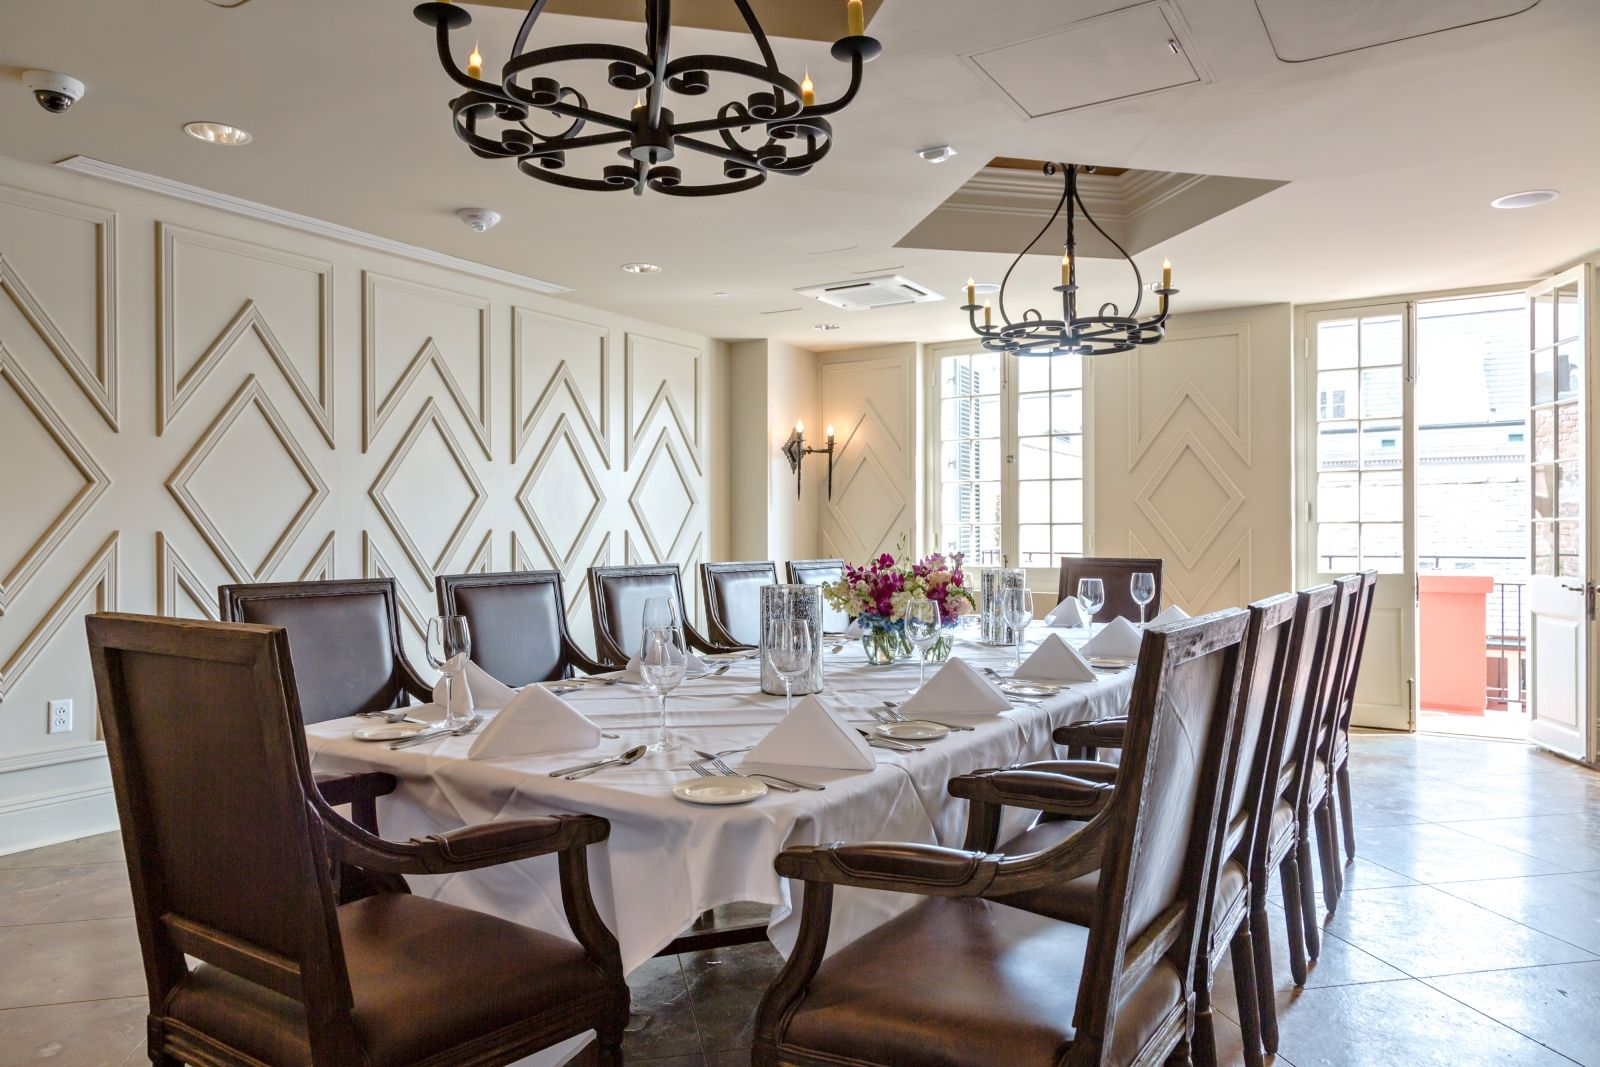 Location Spotlight Tableau Private Dining Room Parlor Room